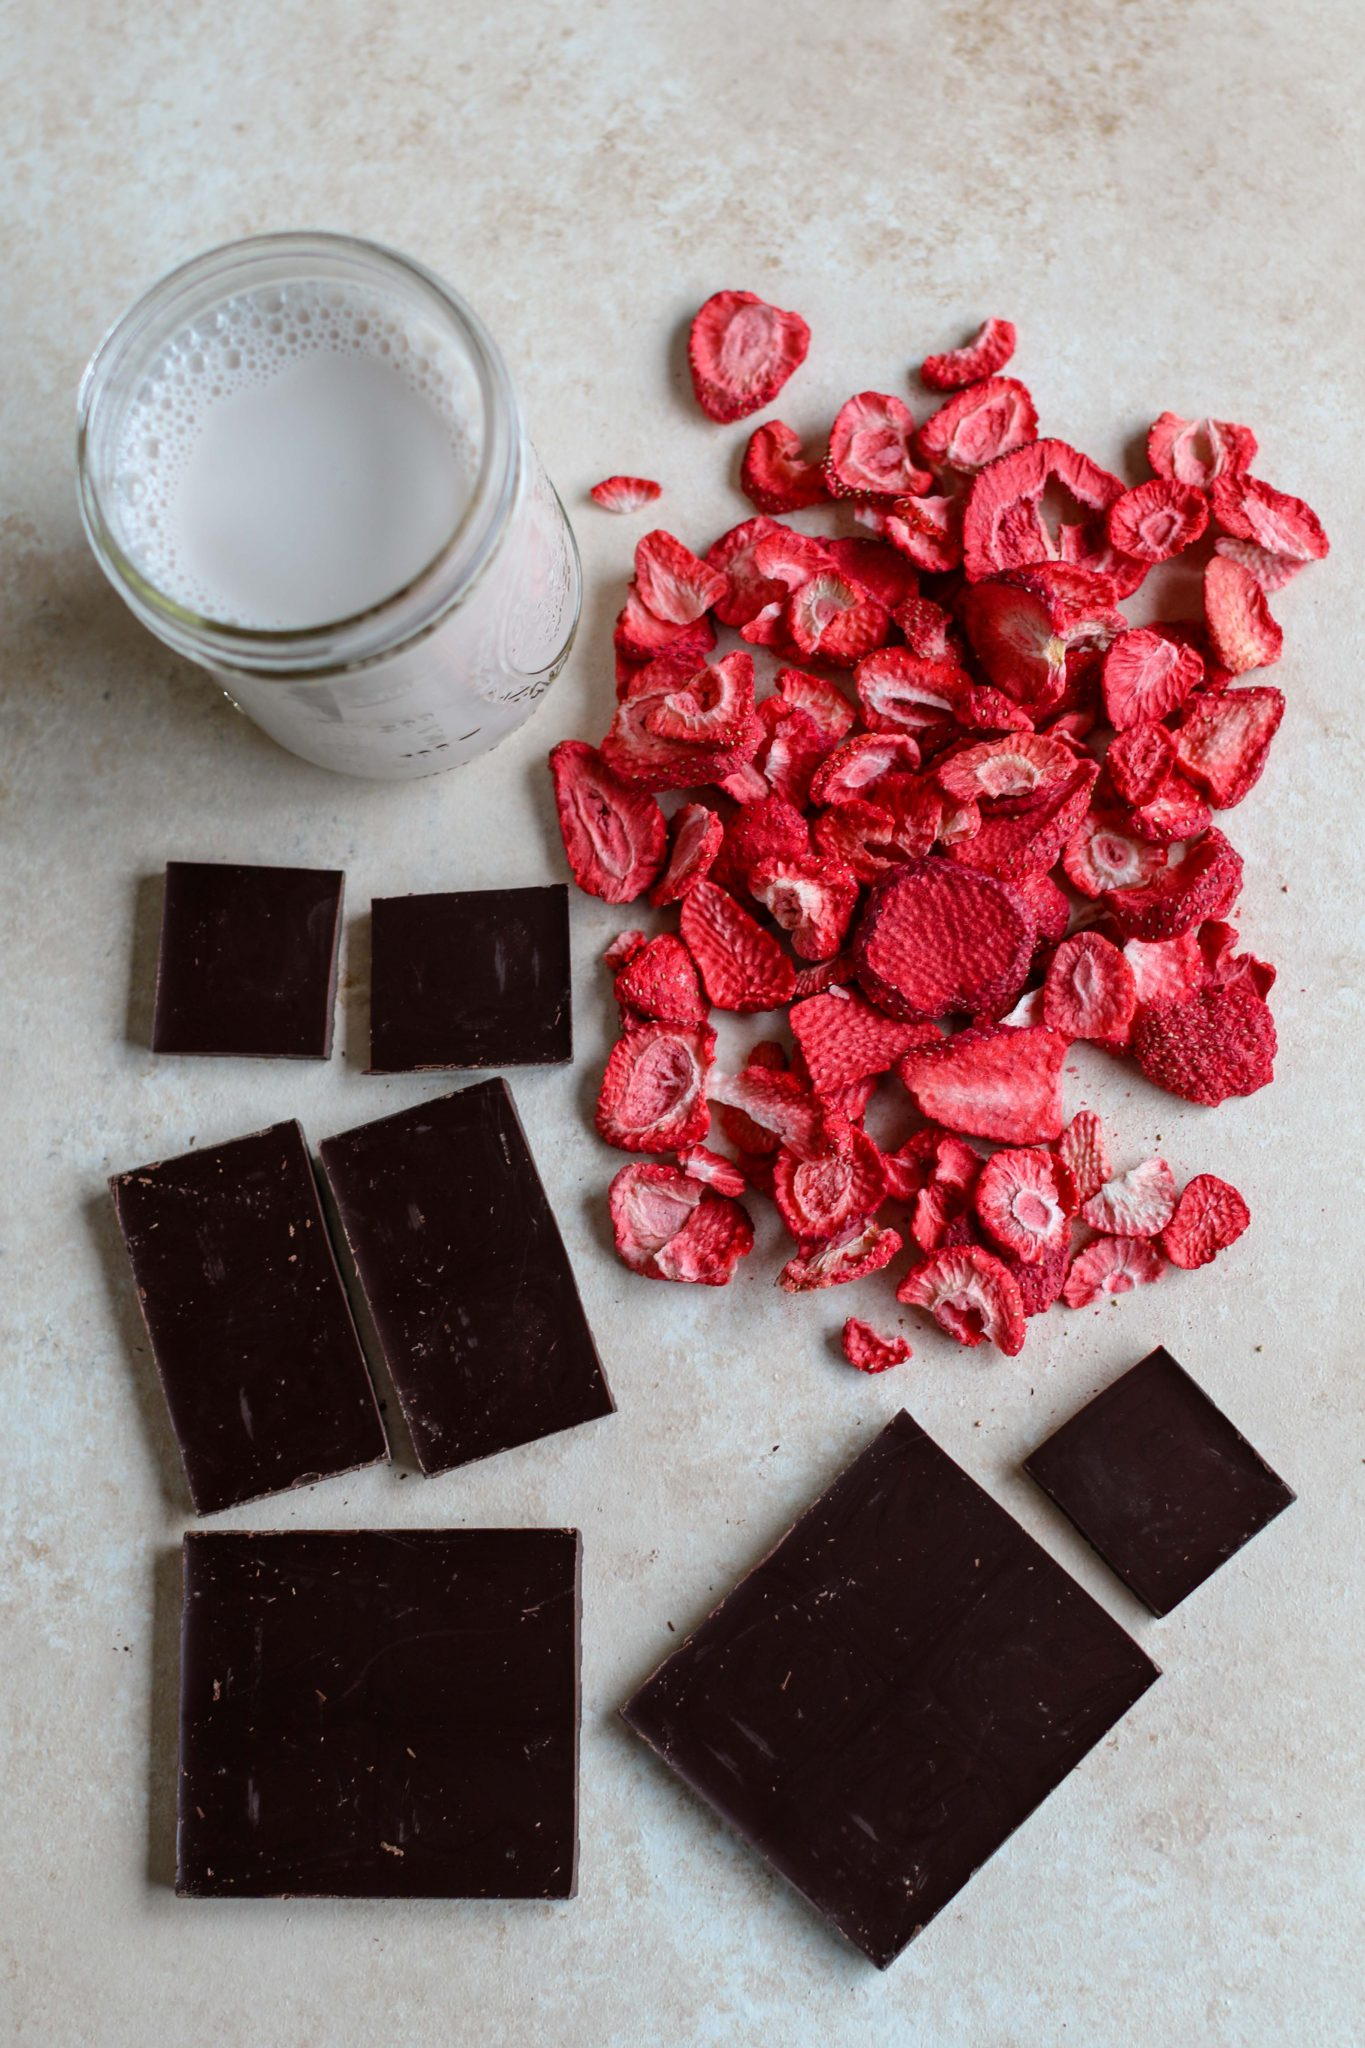 3-Ingredient Chocolate Strawberry Truffle Ingredients